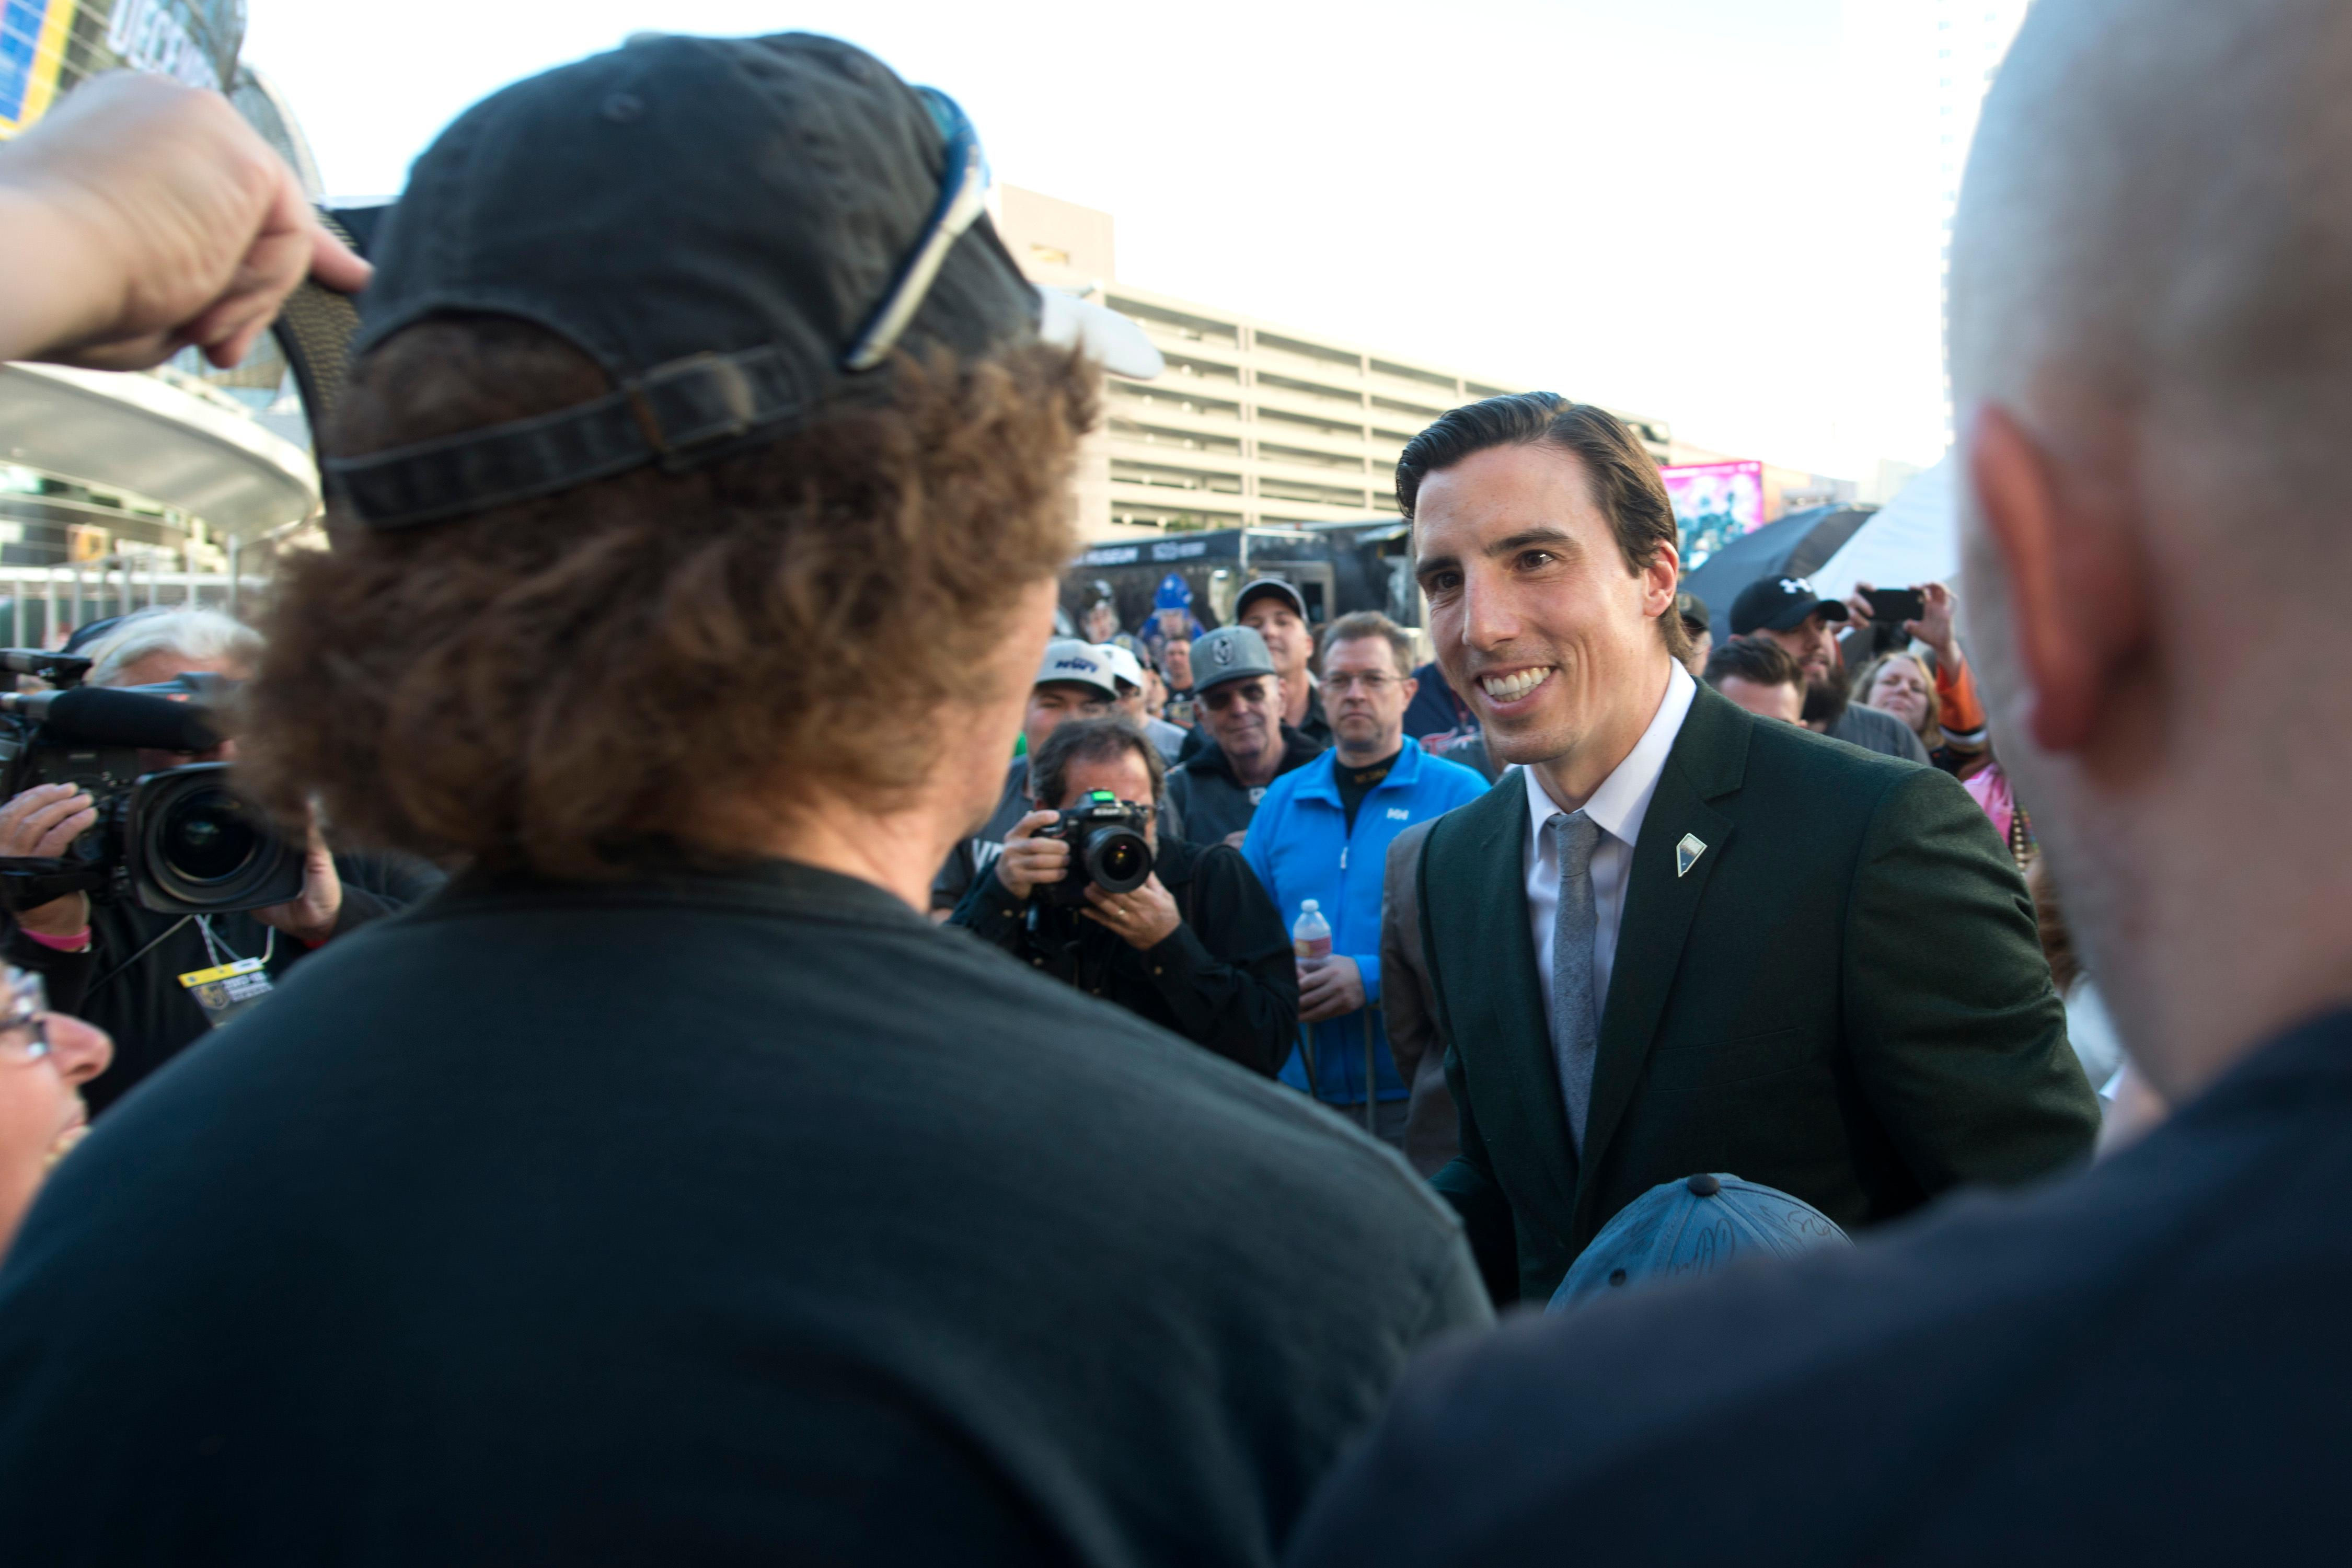 Vegas Golden Knights goalie Marc-Andre Fleury signs autographs before the Vegas Golden Knights home opener Tuesday, Oct. 10, 2017, against the Arizona Coyotes at the T-Mobile Arena. CREDIT: Sam Morris/Las Vegas News Bureau